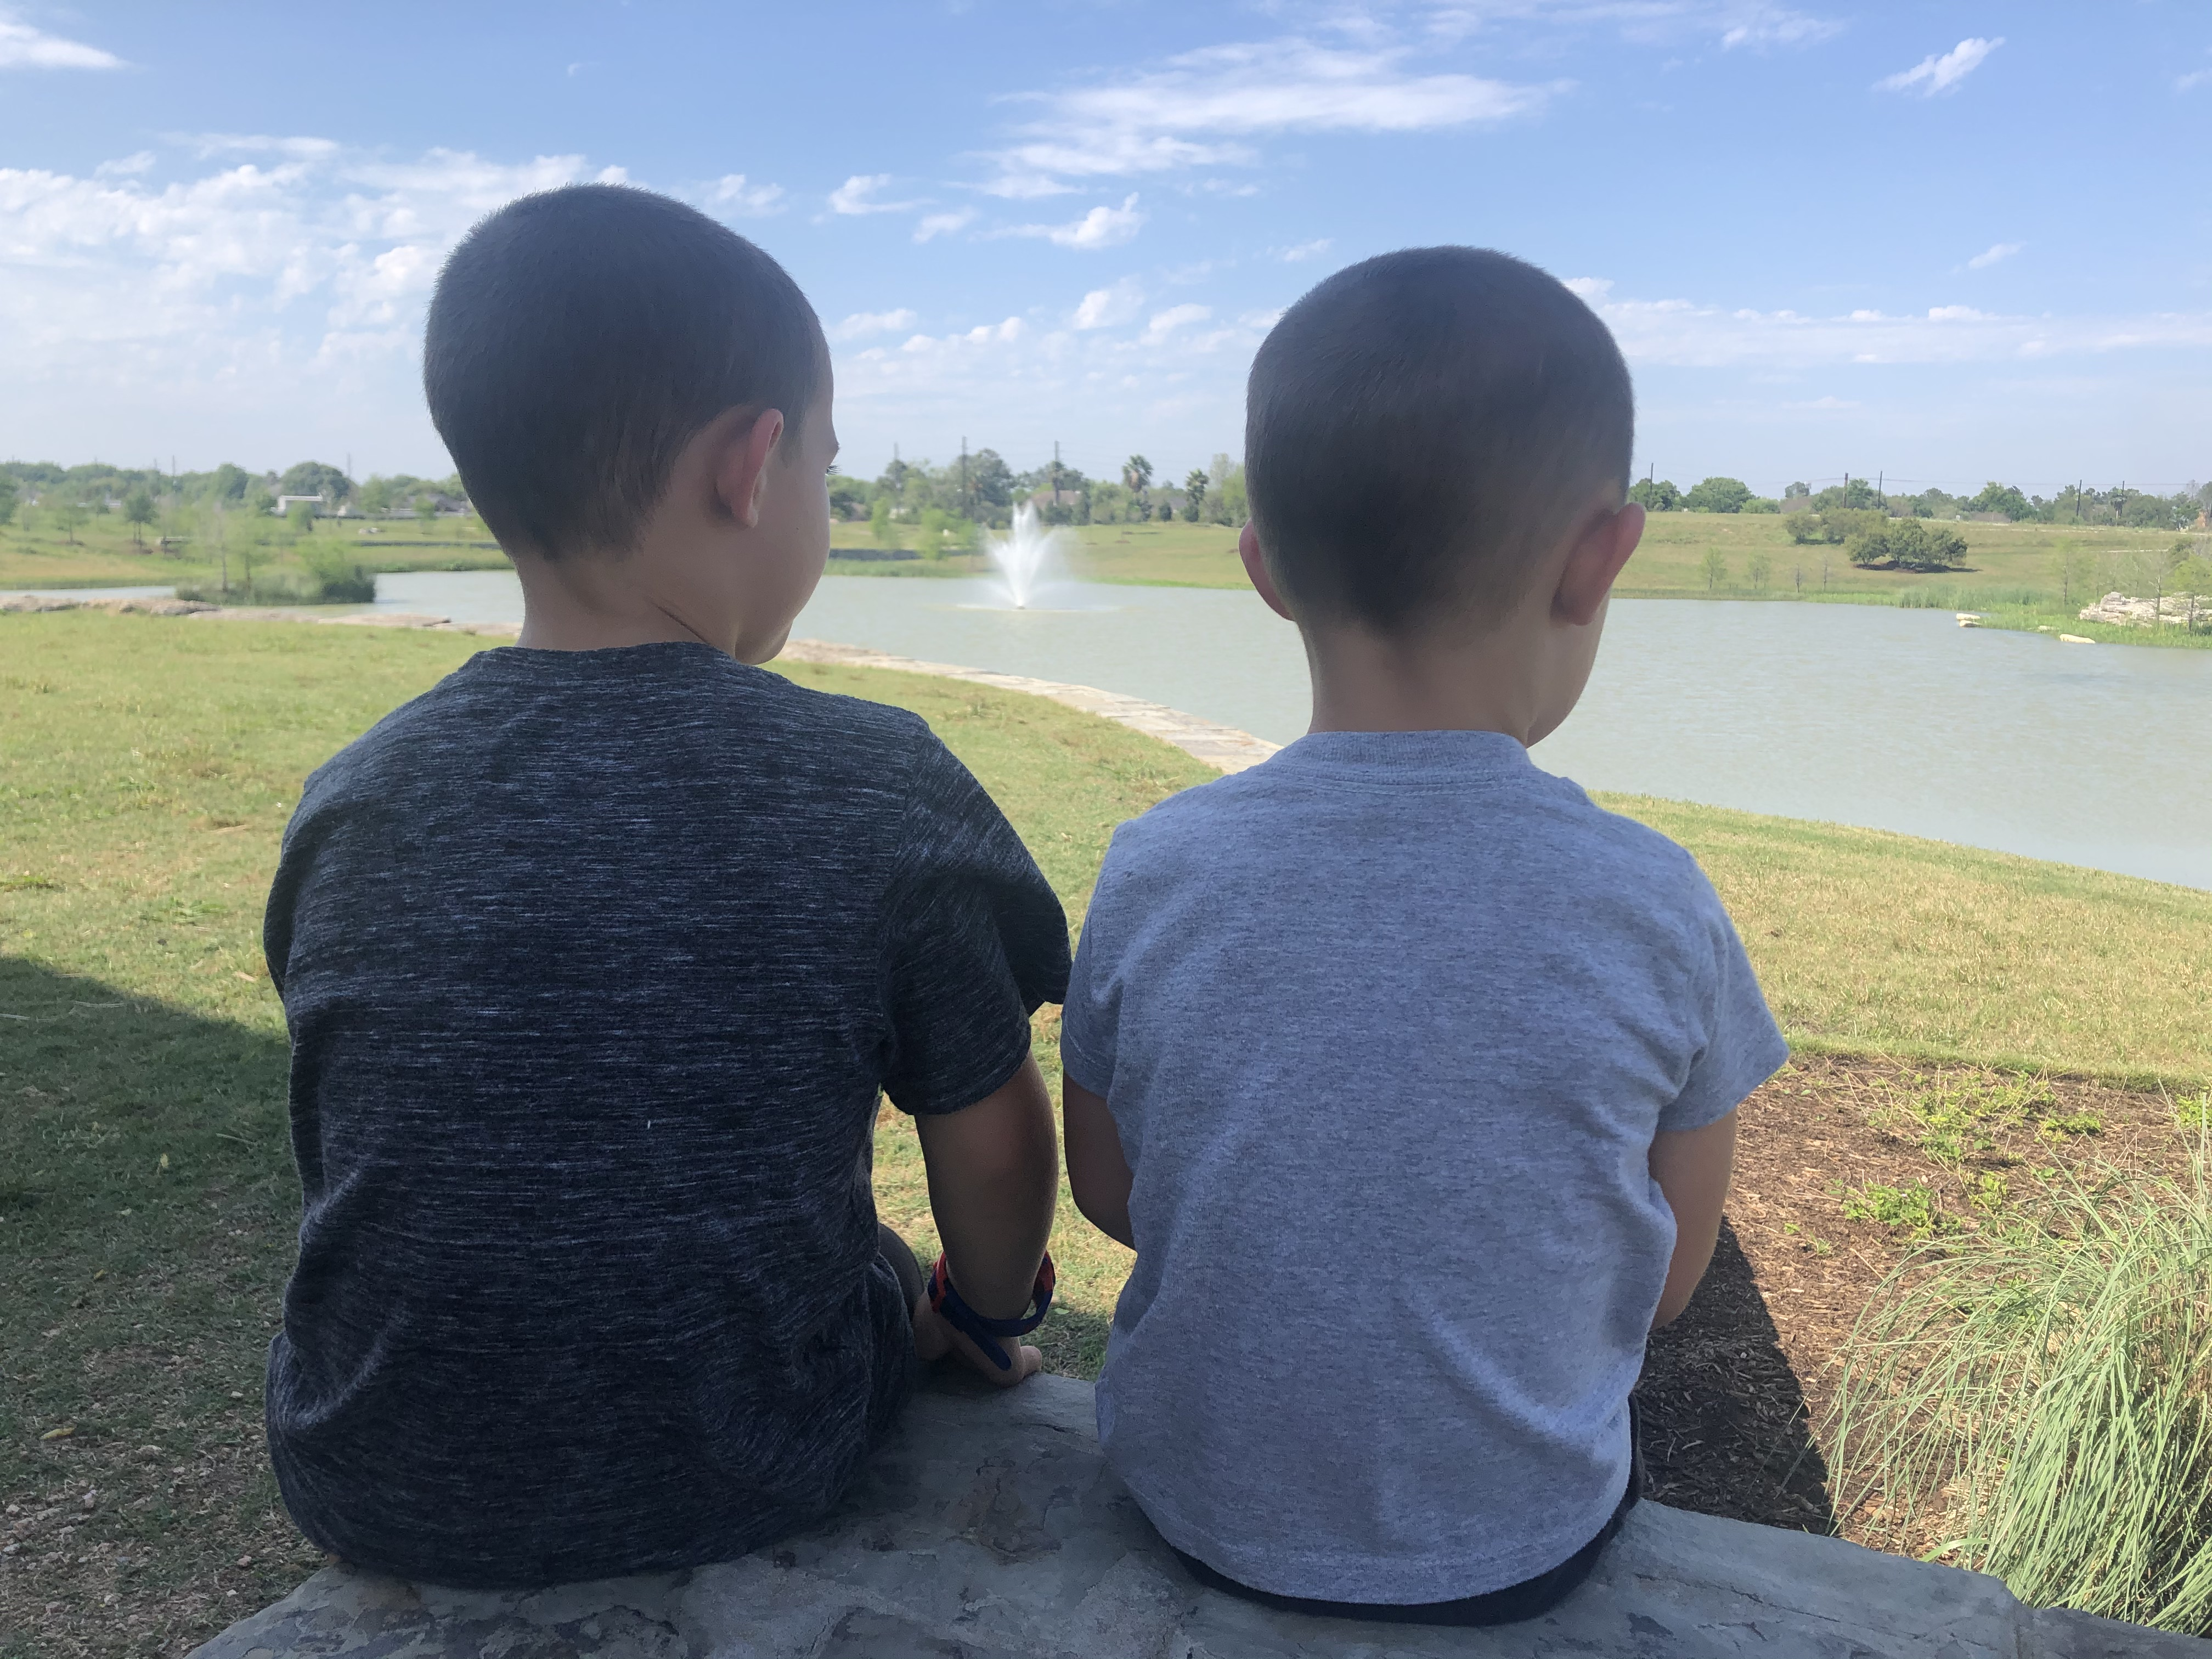 Brothers sitting together outside